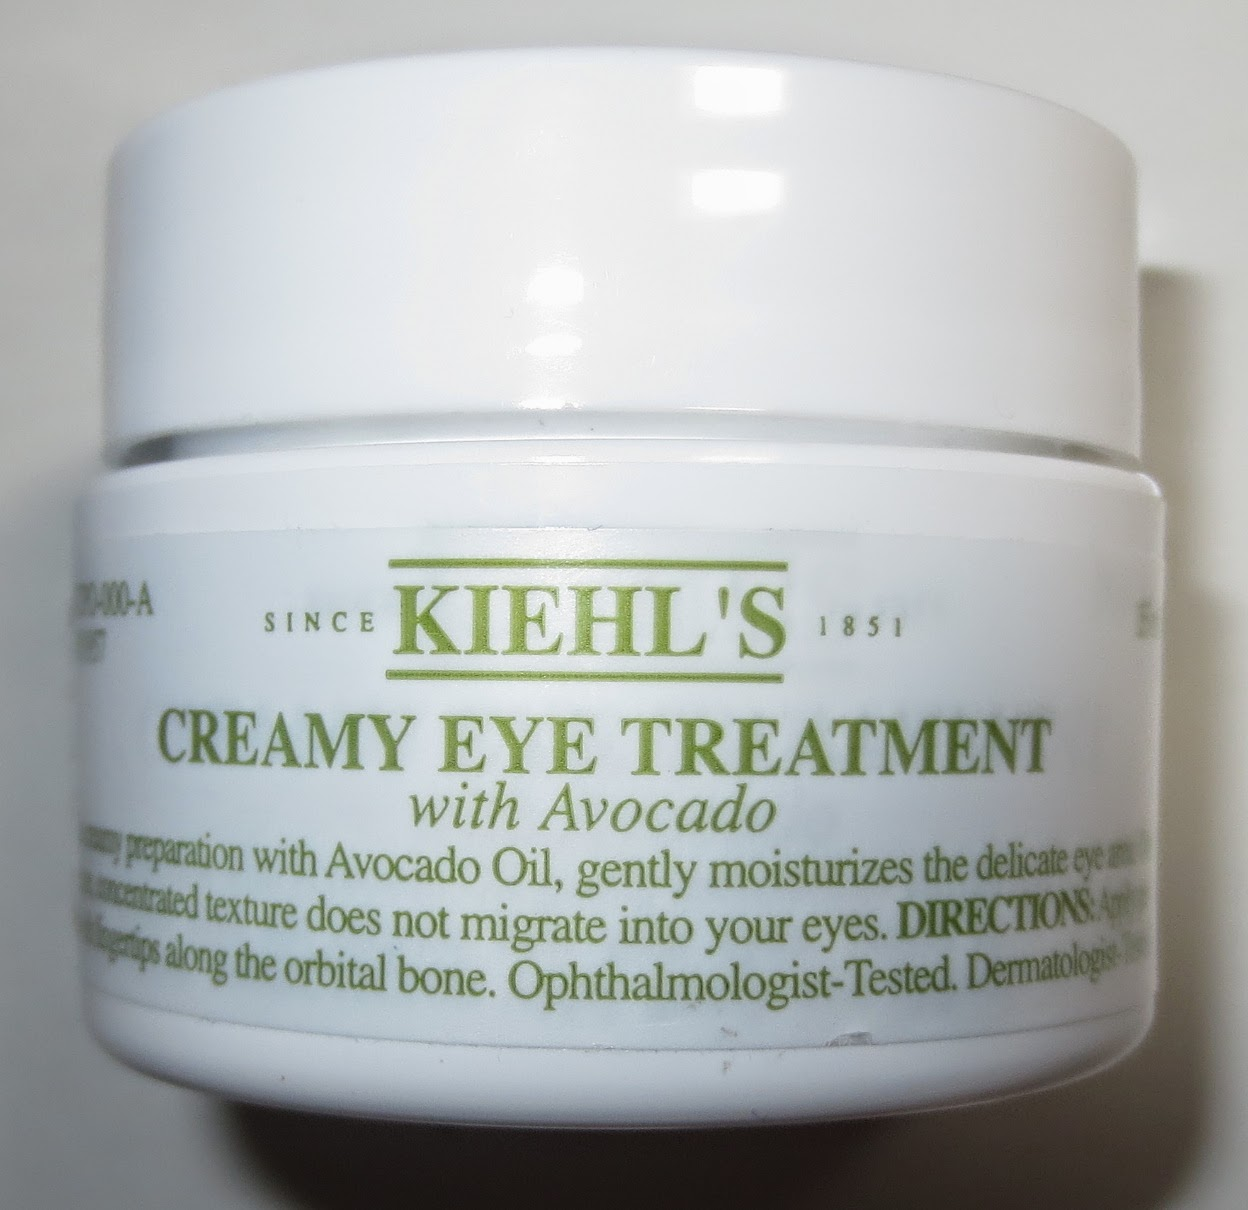 Kiehl's Creamy Eye Treatment with Avocado Packaging